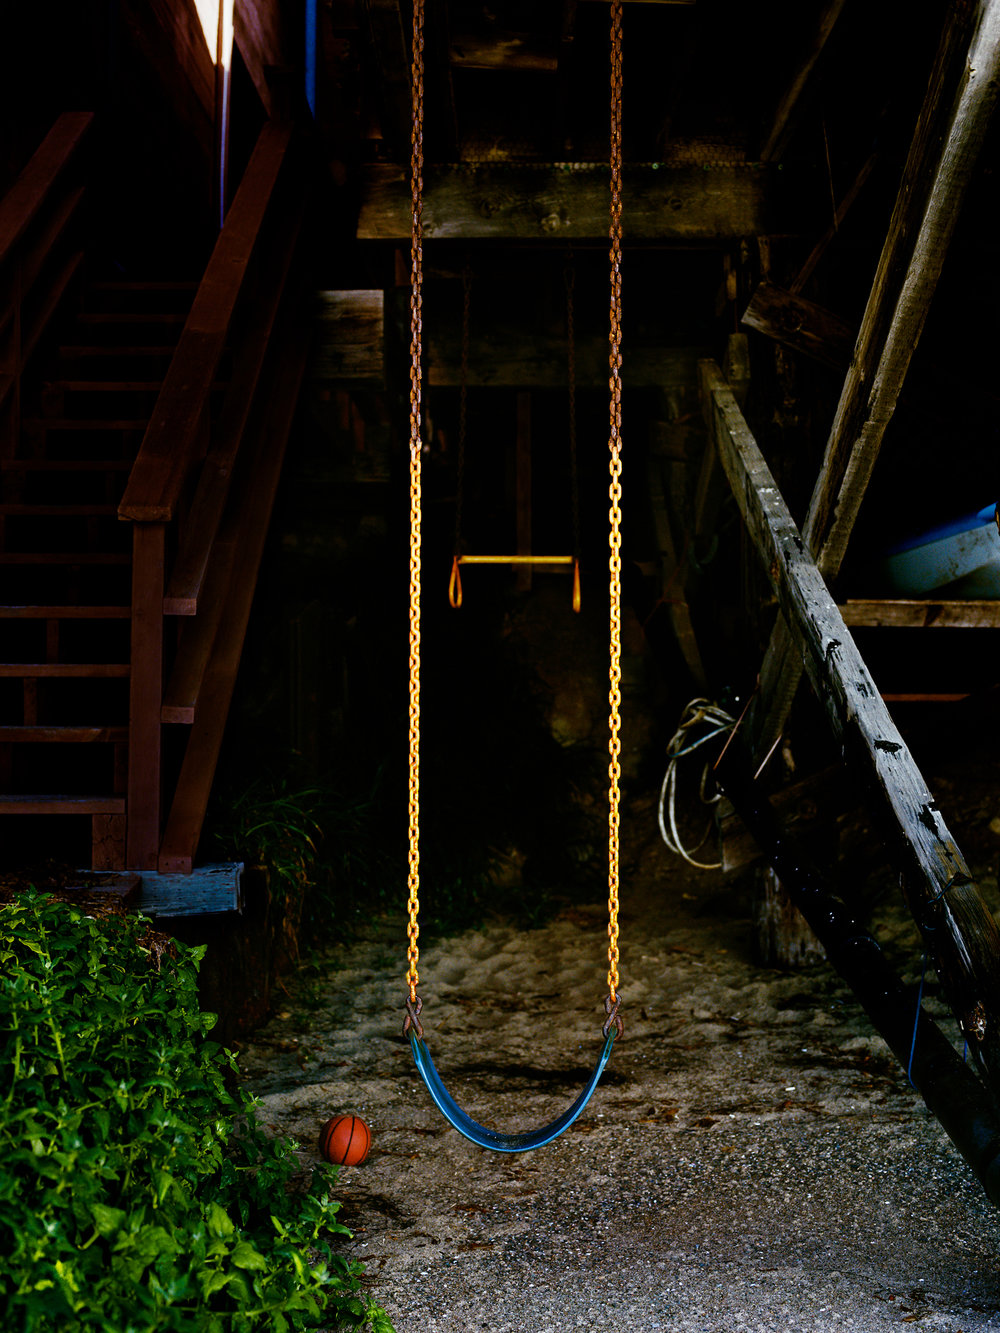 Untitled #5 (Nowhere), 2012/ archival pigment print, 41 x 31 inches, edition of 3 plus 2 AP